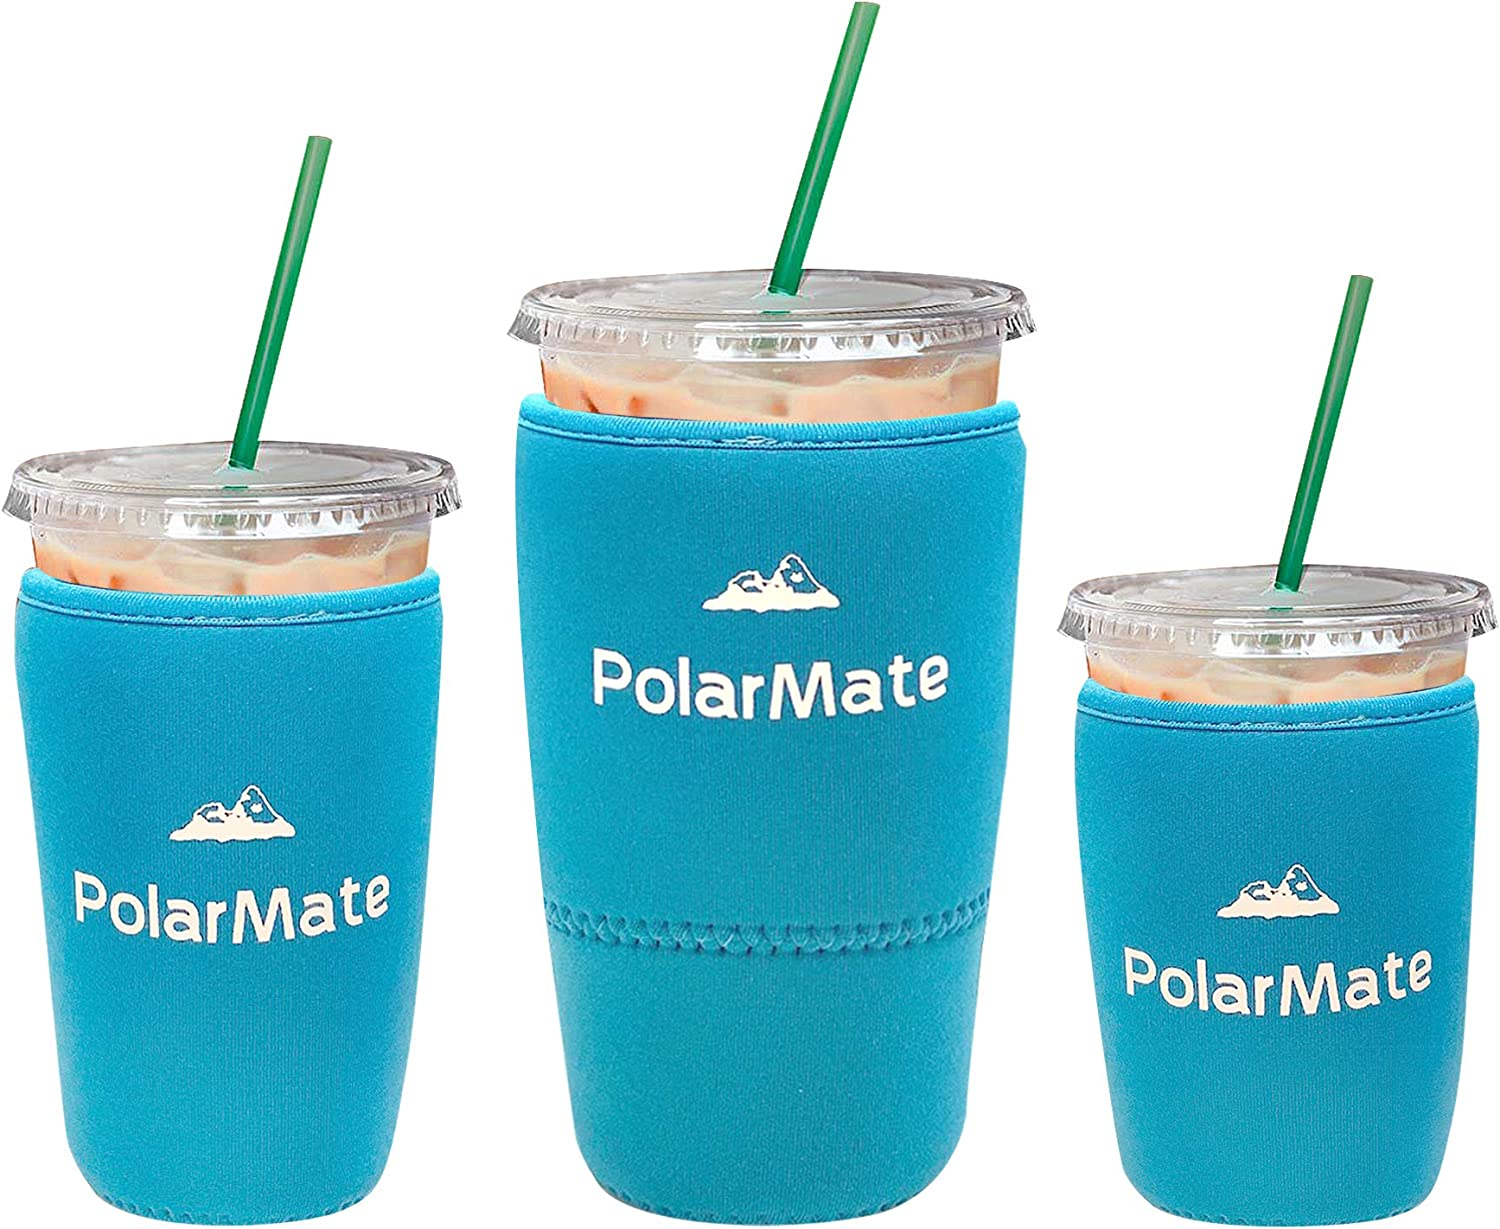 3 Pack Reusable Iced Coffee Sleeve | Insulator Cup Sleeve for Cold Drinks Beverages | Neoprene Cup Holder | Ideal for Starbucks, McDonalds, Dunkin Donuts & More (Light Blue)